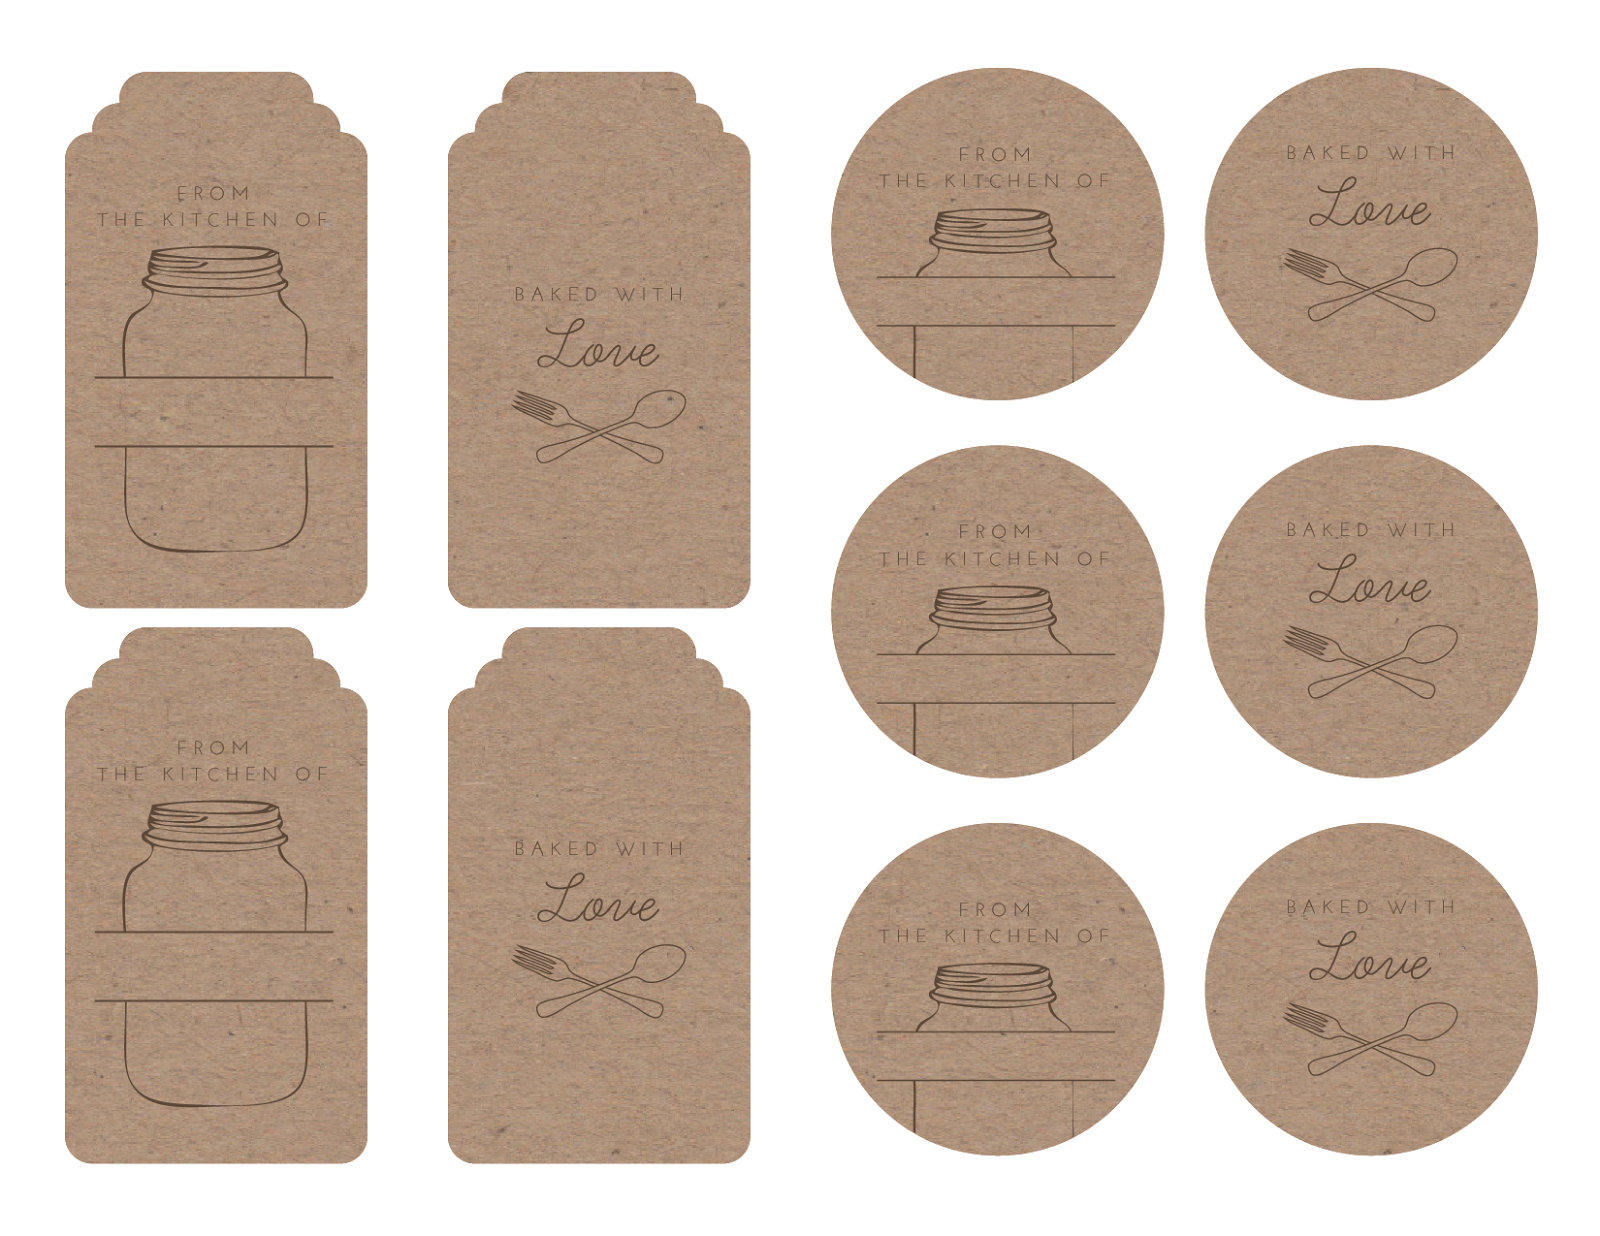 Homemade Tags For Your Baked Goods | Printables & Graphics | Bake - Free Printable Baking Labels